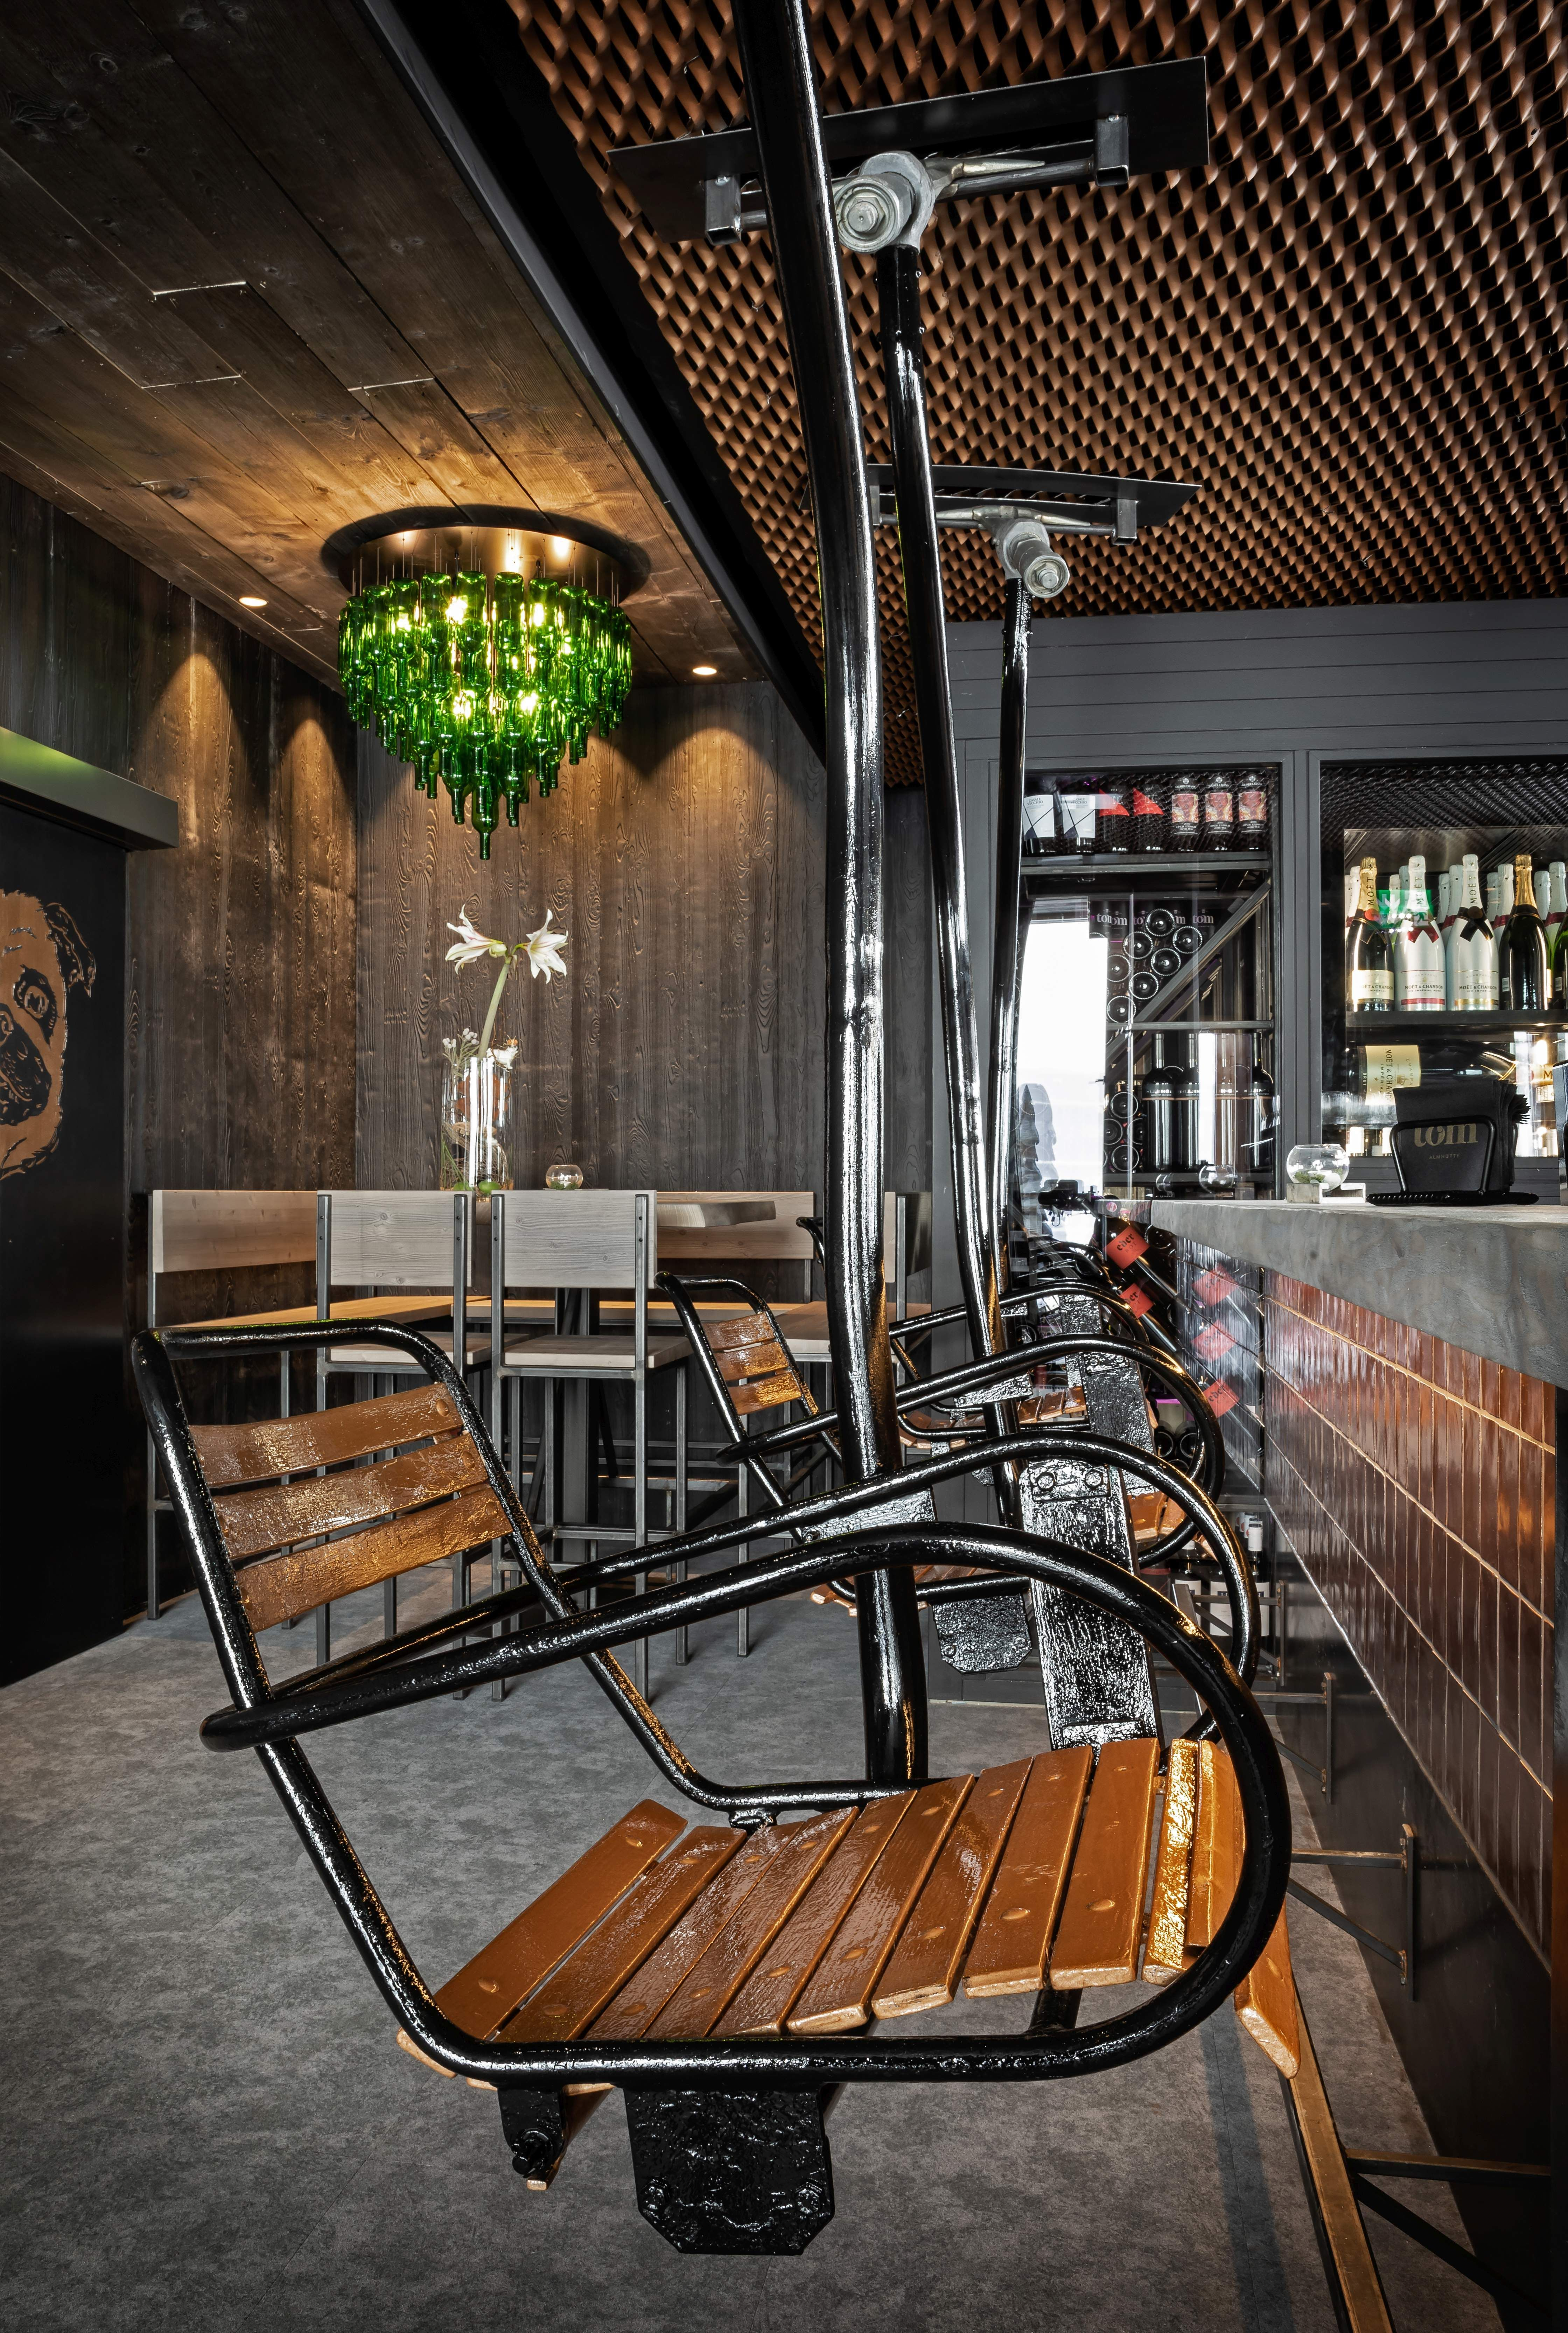 Tom Almhutte For This Austrian Restaurant Bar And Chalet We Provided The Central Counter Made Fro Modern Mountain Home Restaurant Interior Design Bar Design